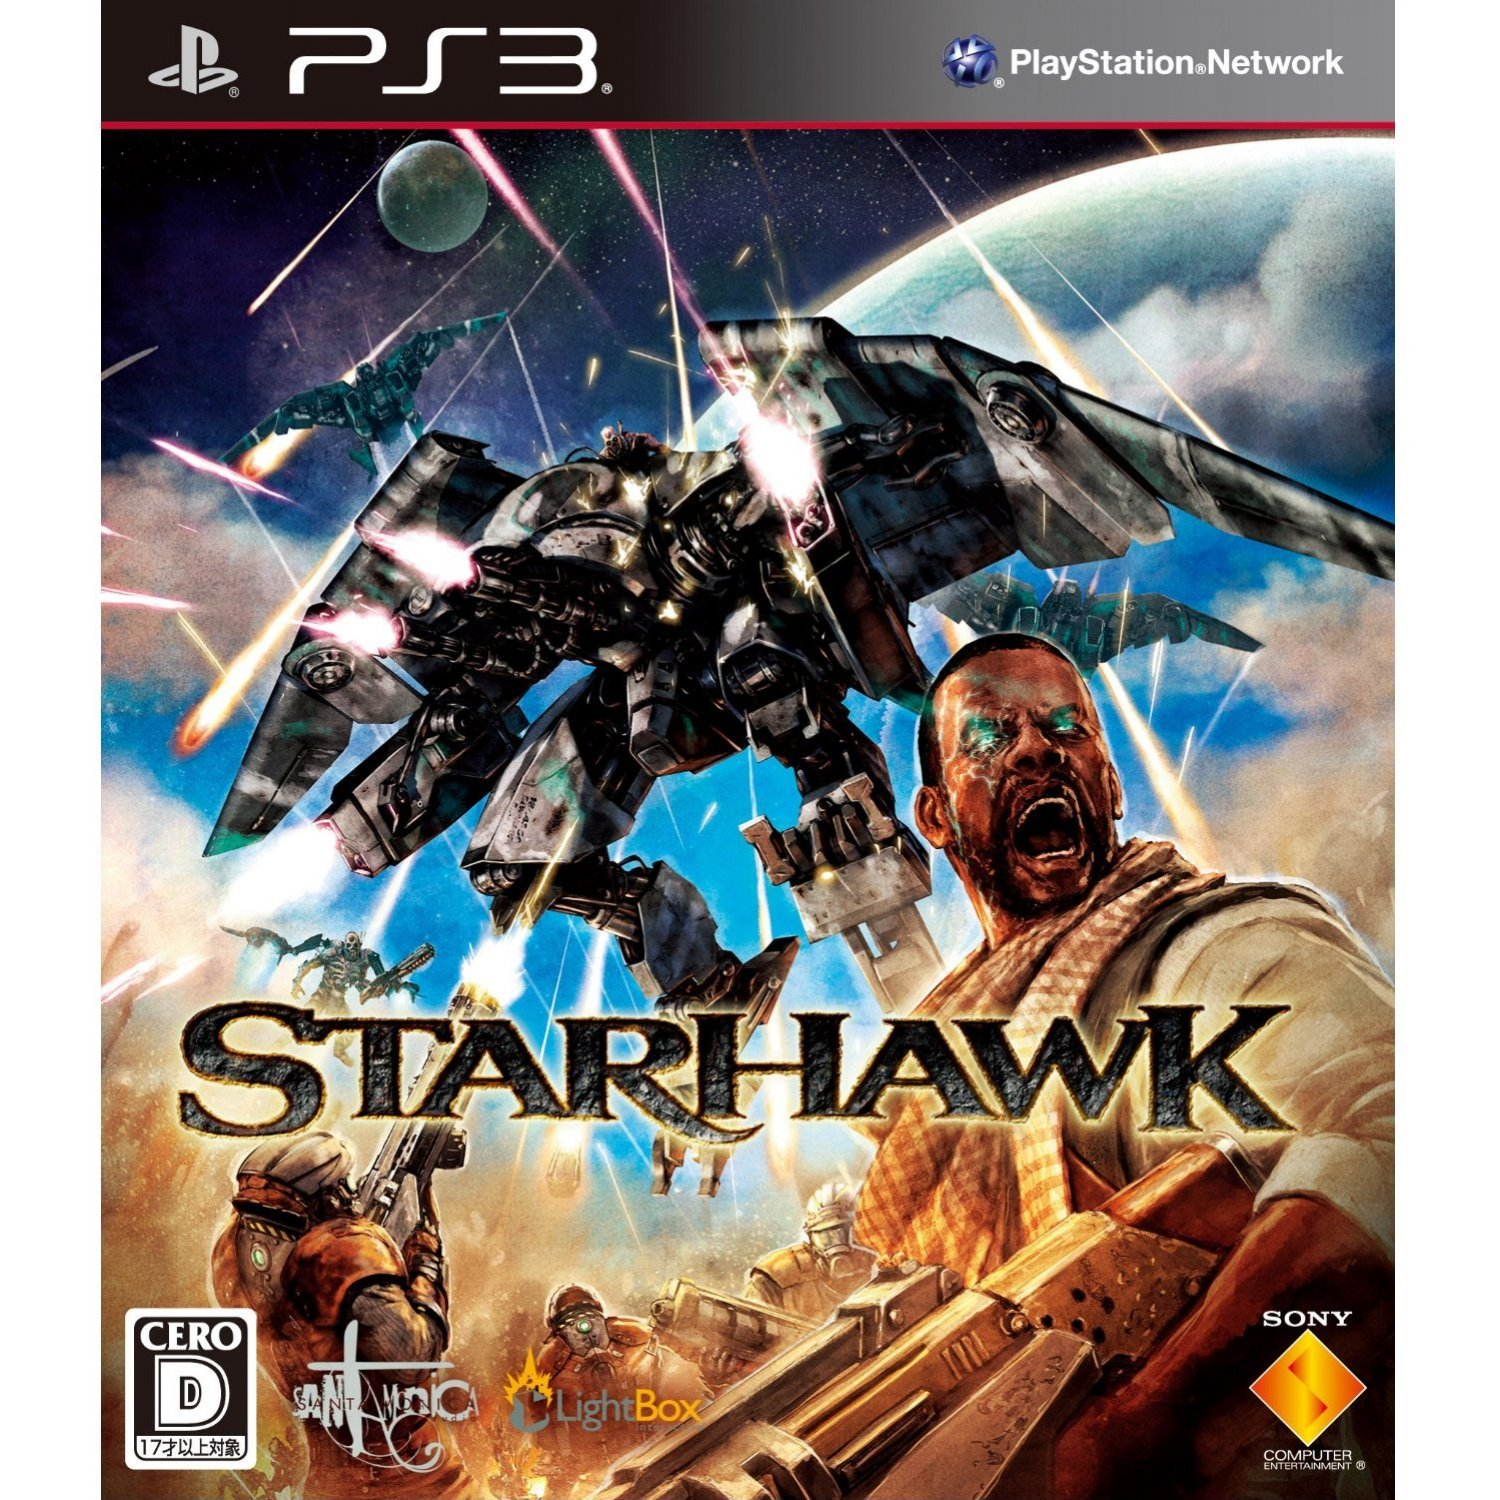 Starhawk online players in dating